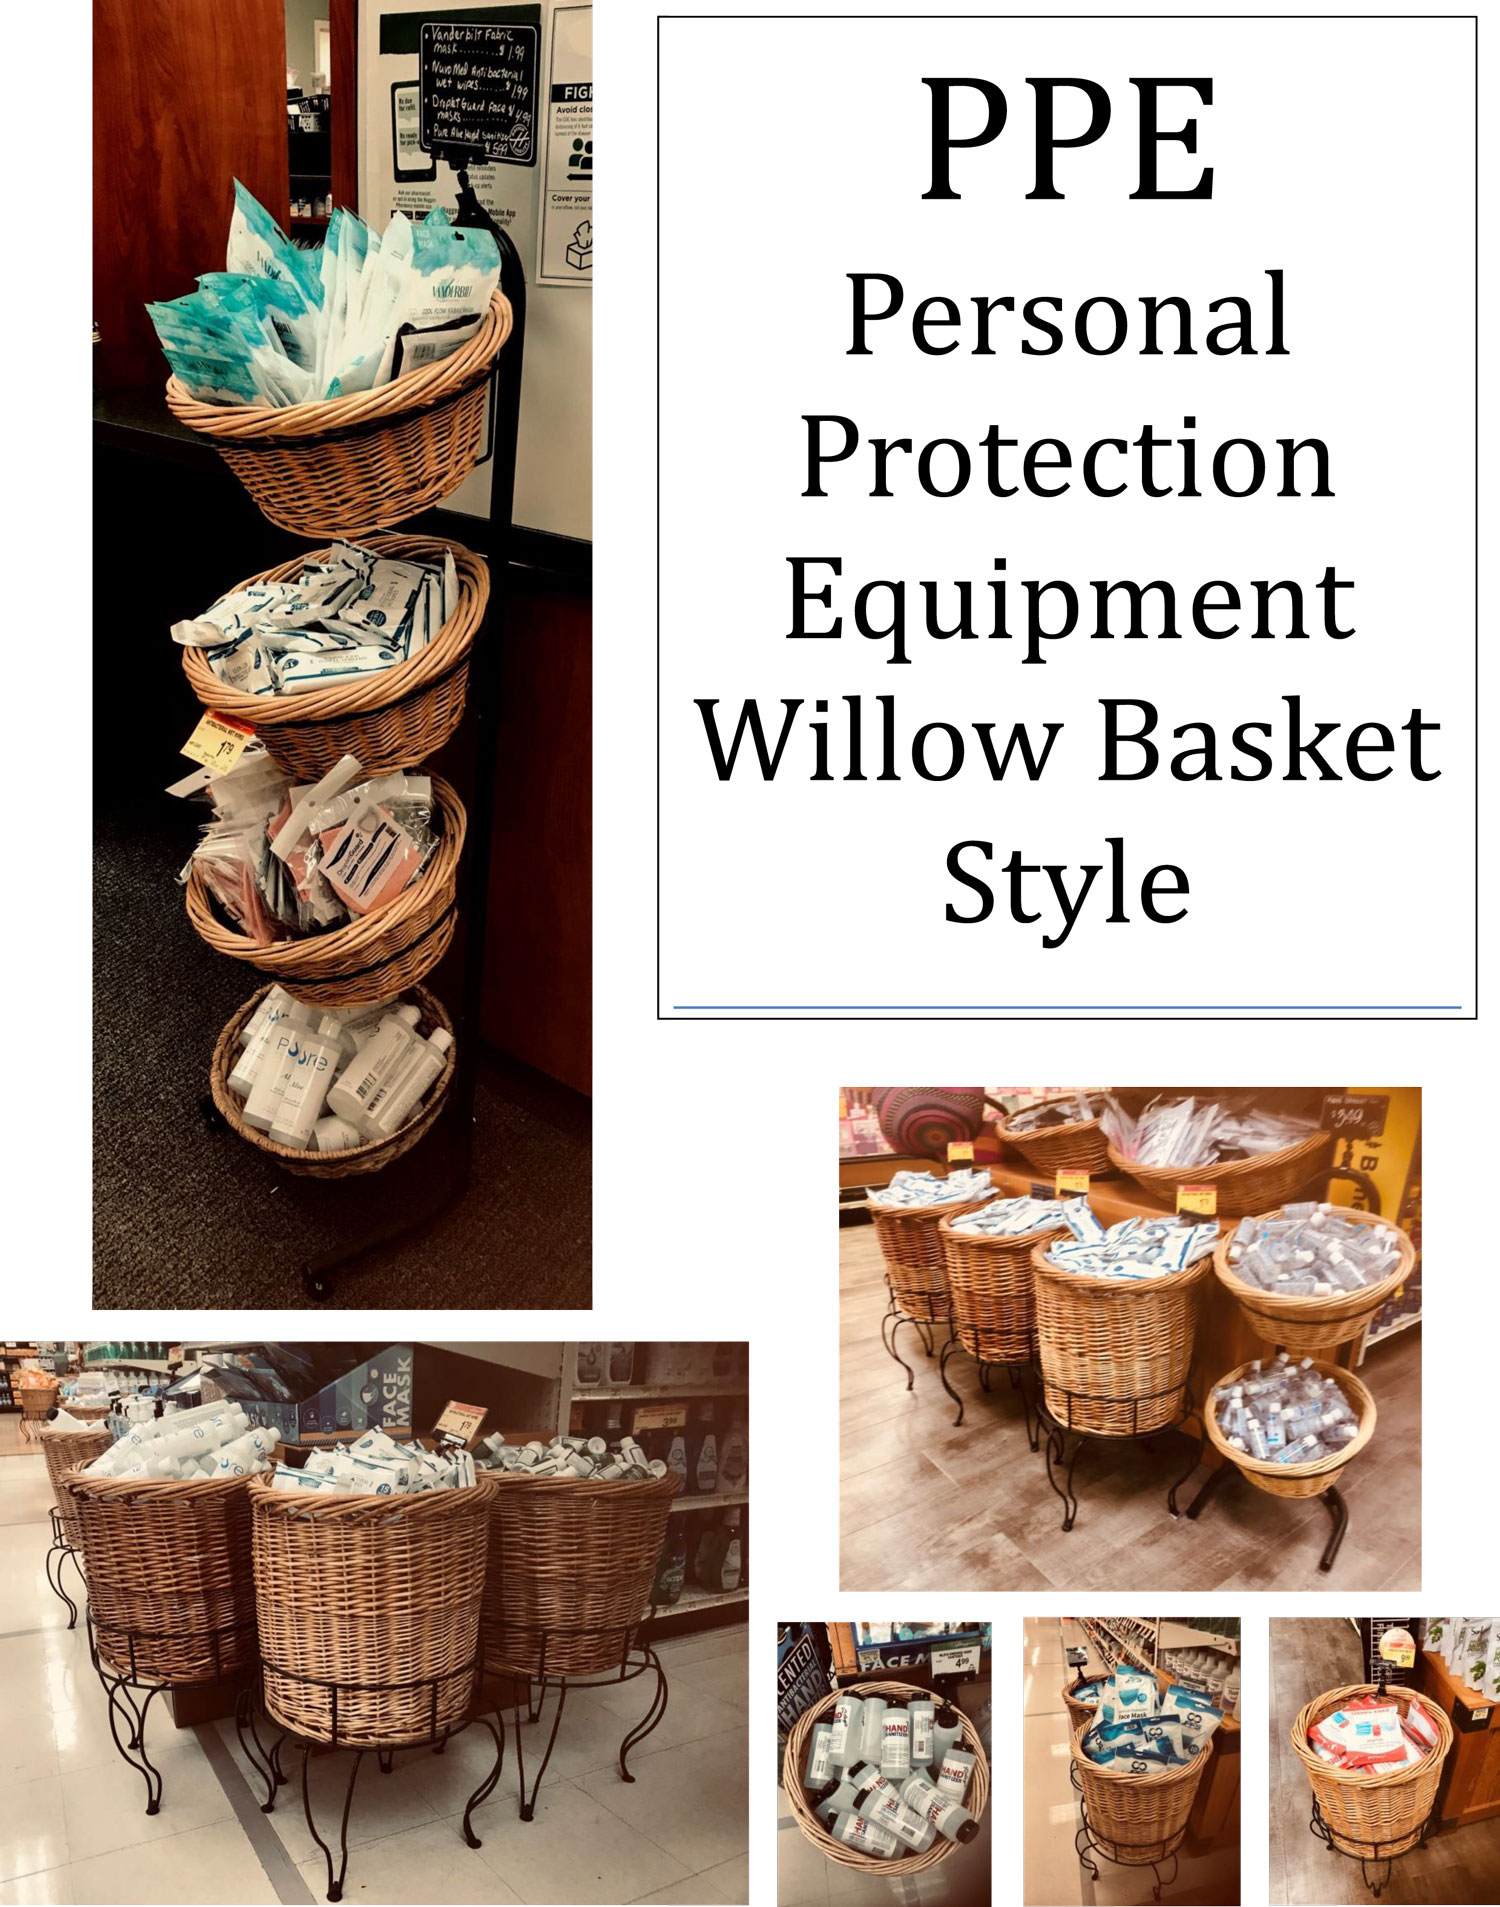 PPE PERSONAL PROTECTION EQUIPMENT WITH WILLOW BASKET DISPLAYS